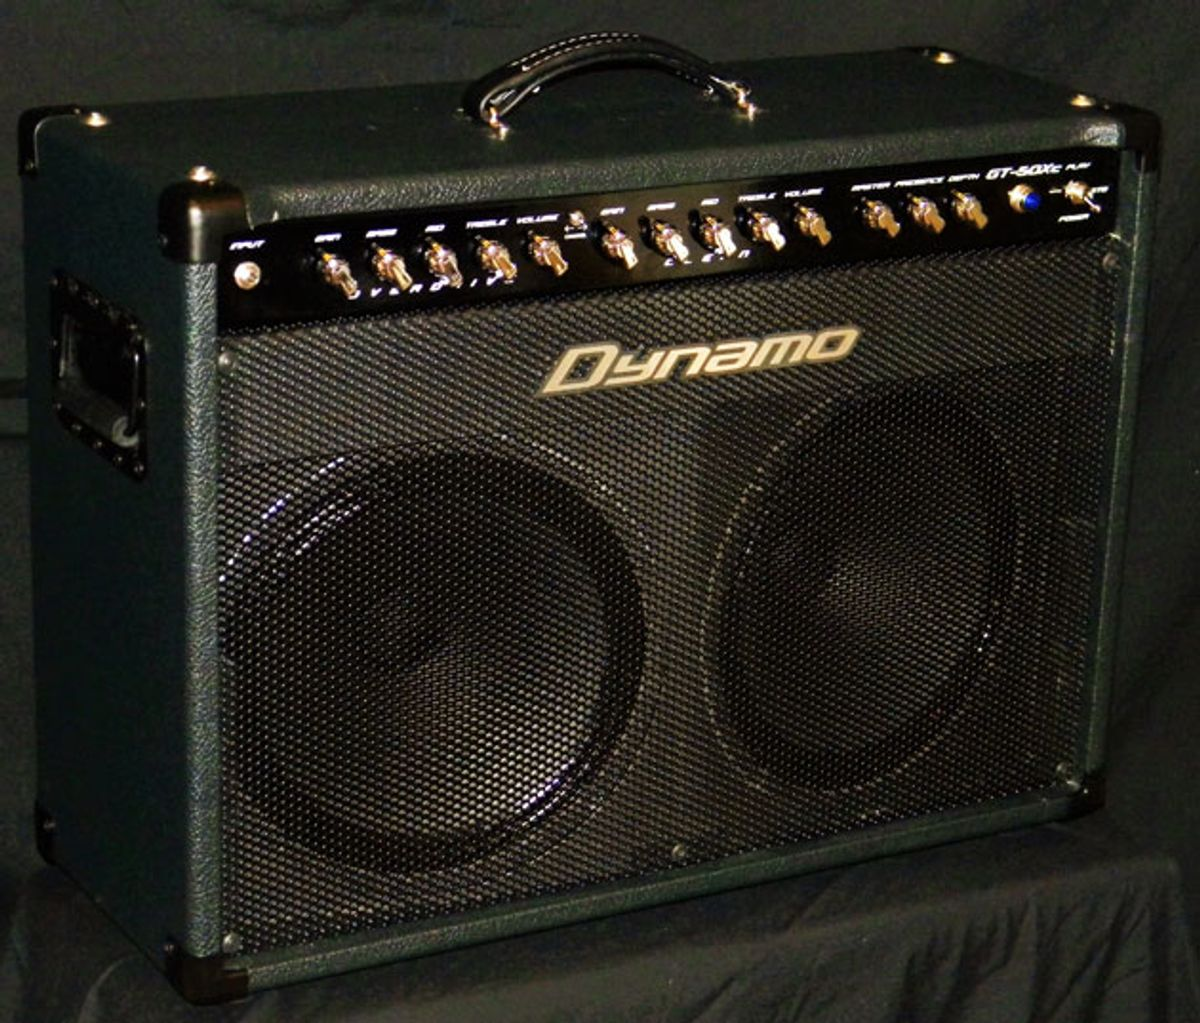 Dynamo Amplification Introduces the GT120x and GT50Xc 212 Combo